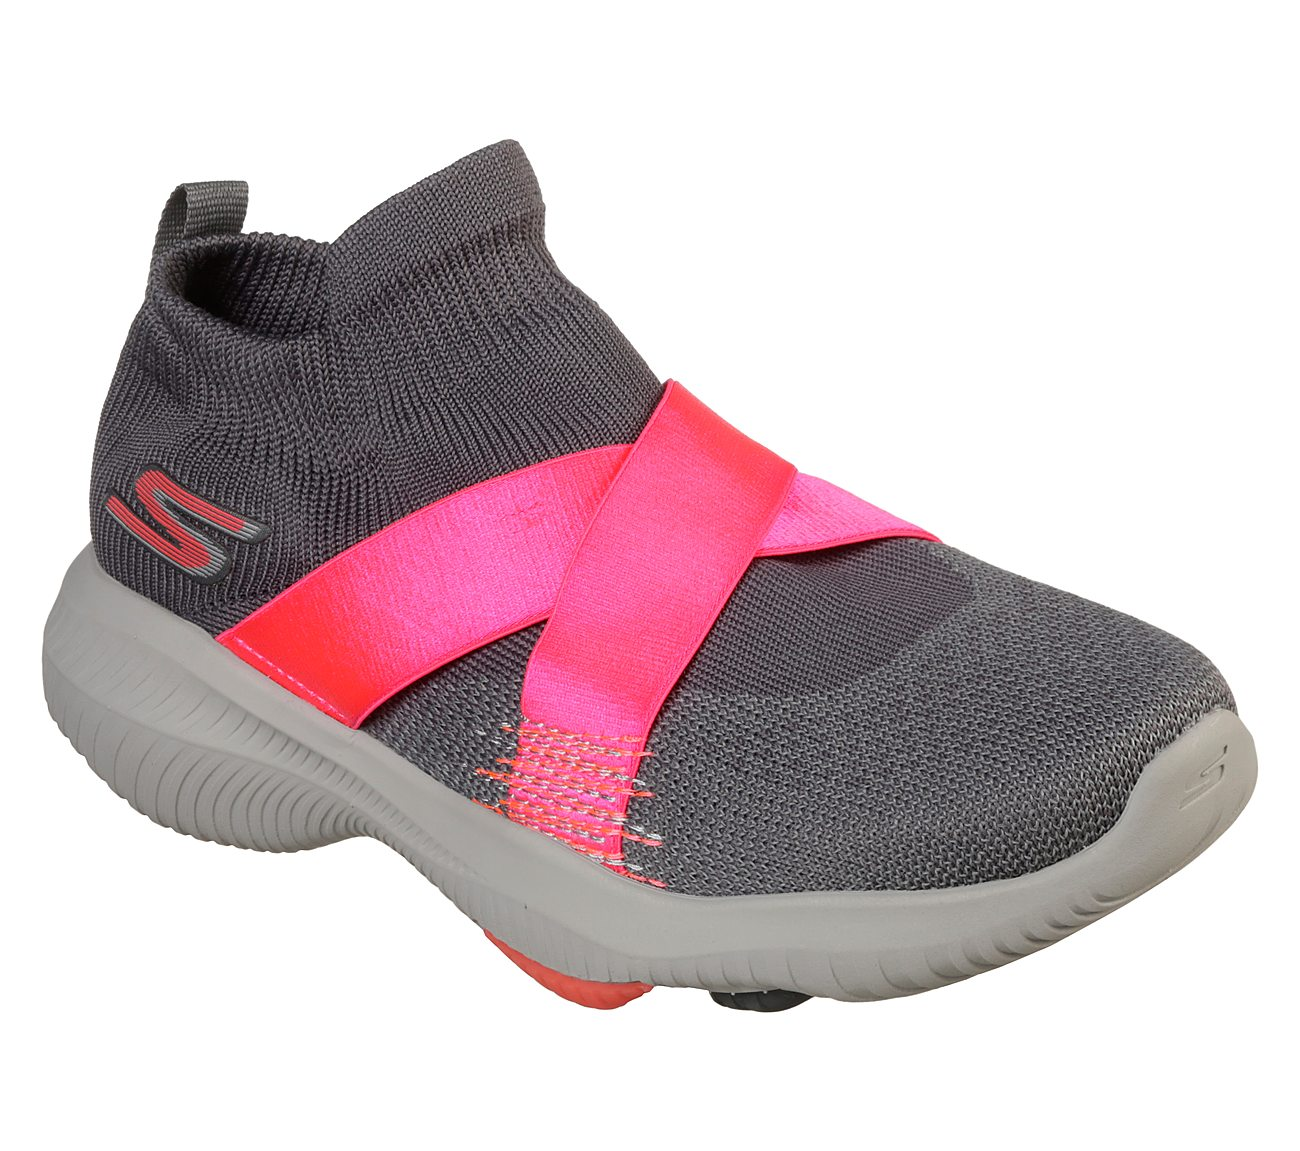 Skechers GOwalk Revolution Ultra - Bolt